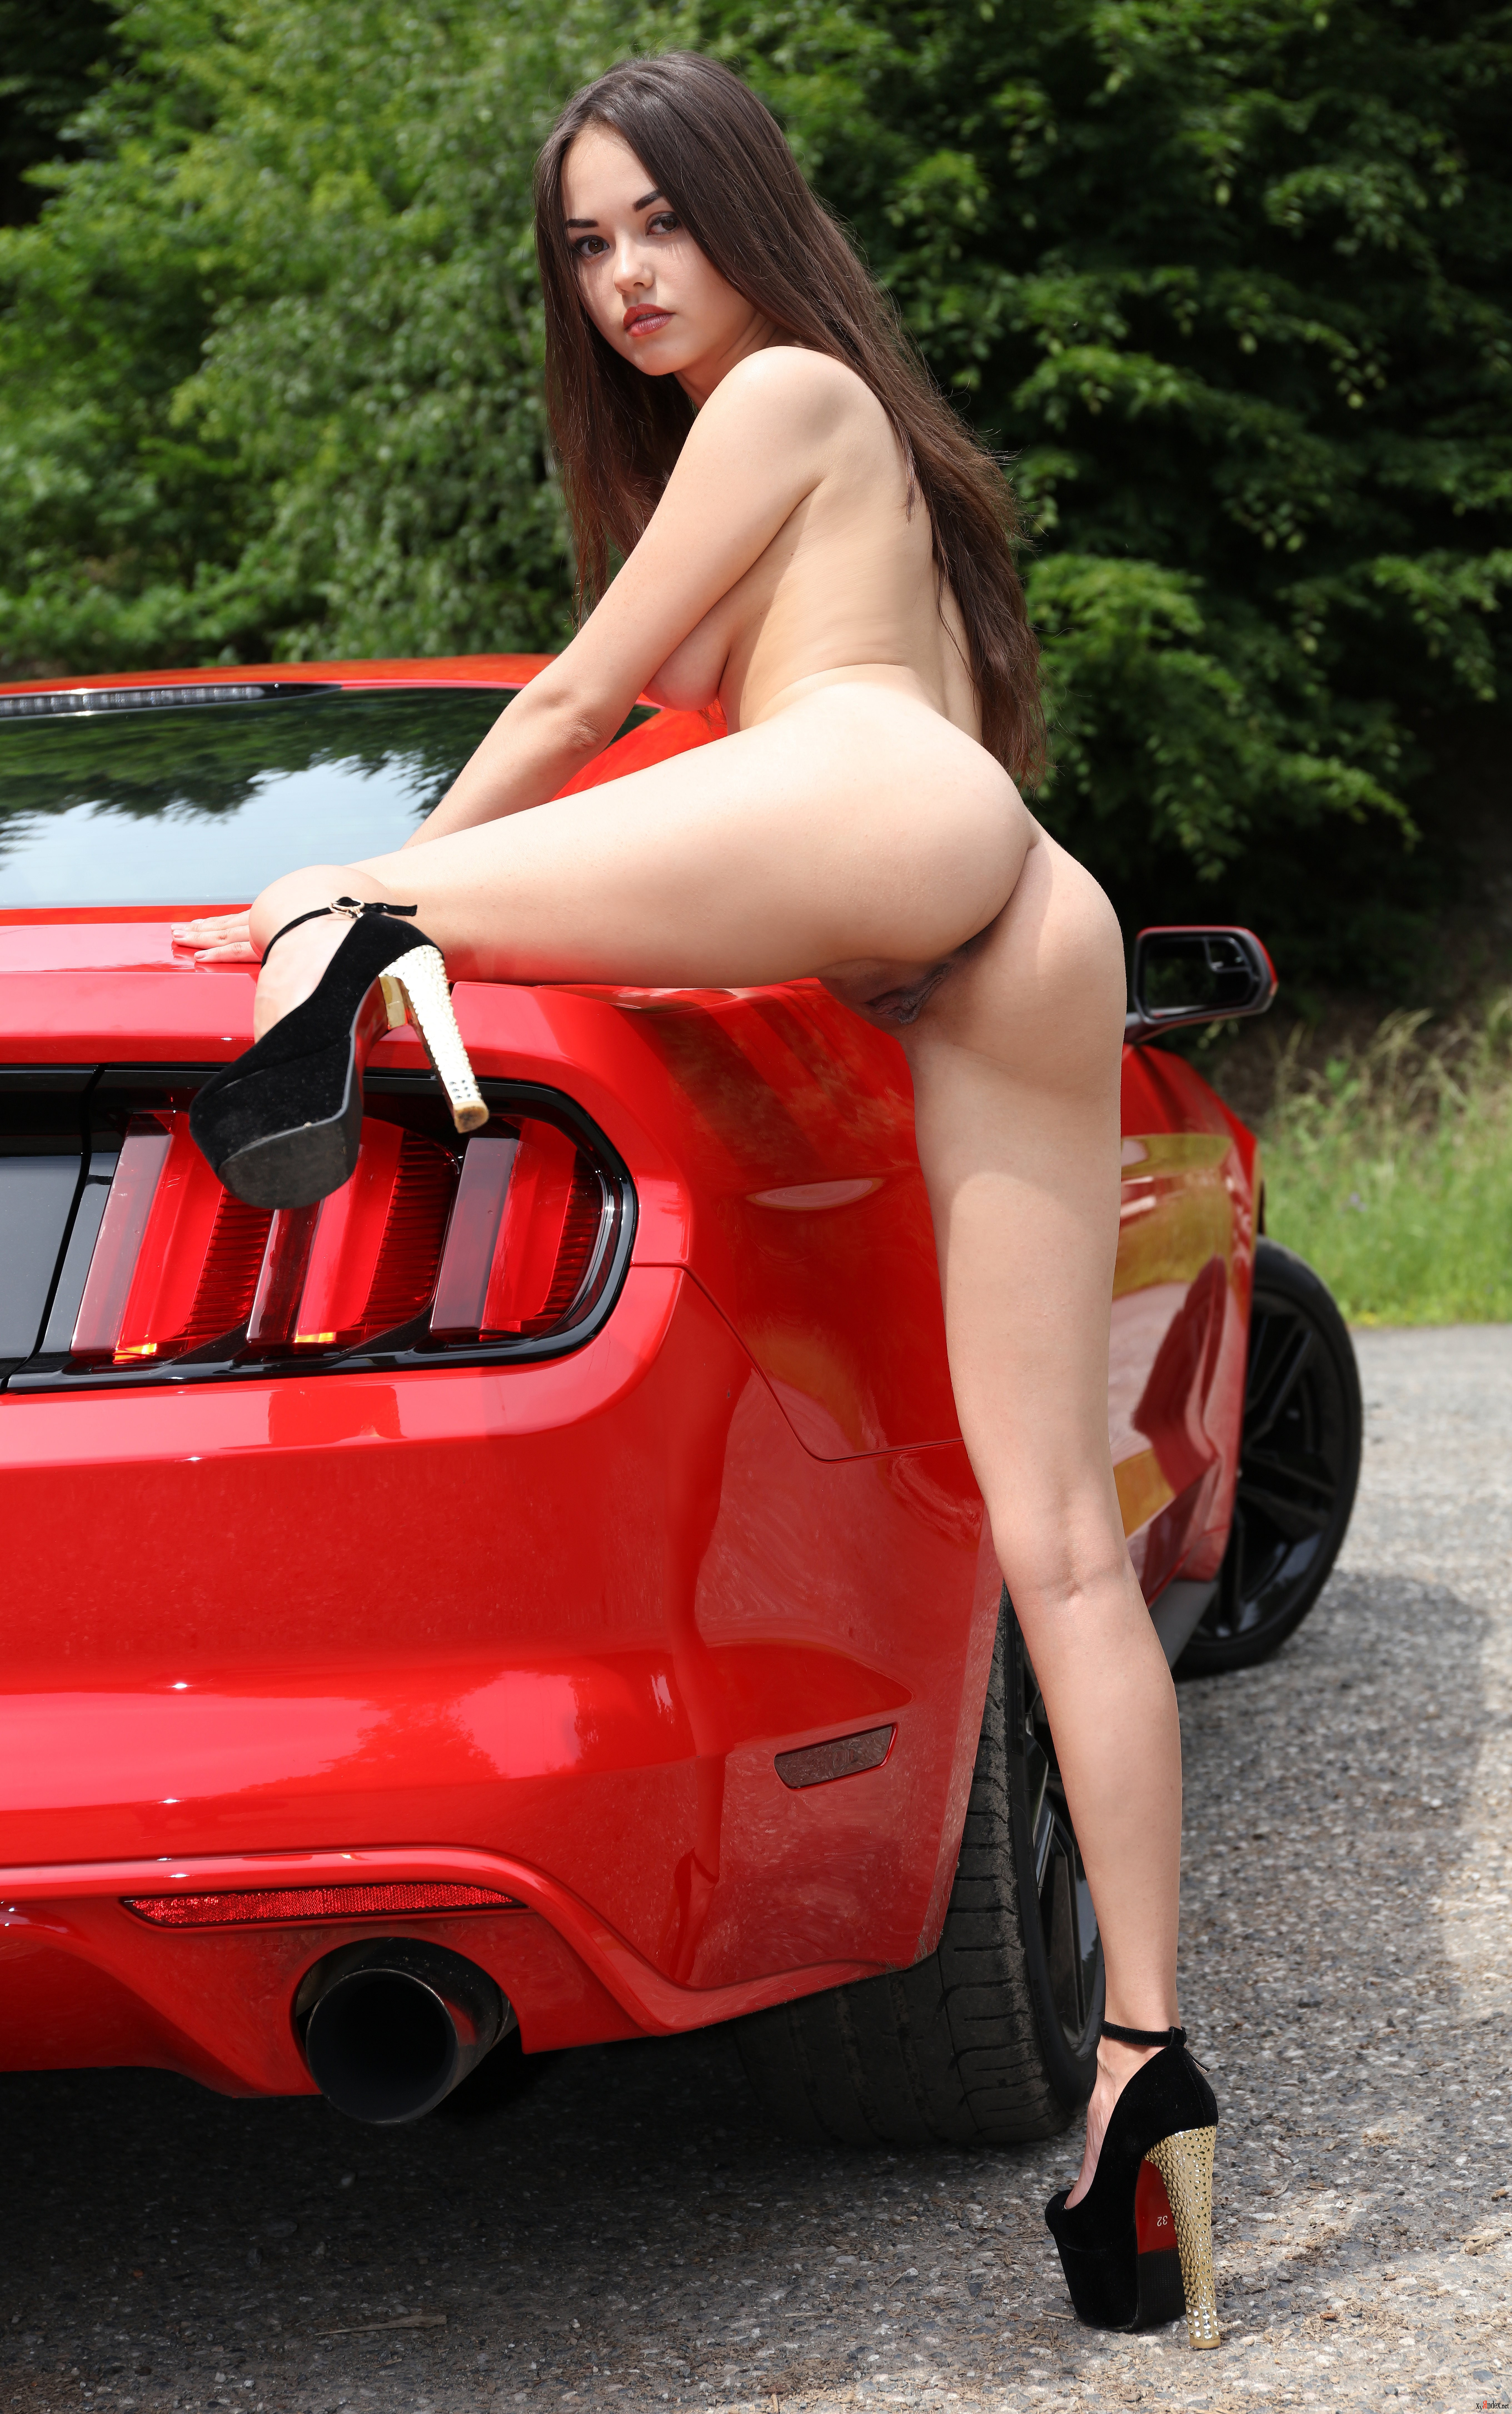 mustang-nude-girl-bride-movie